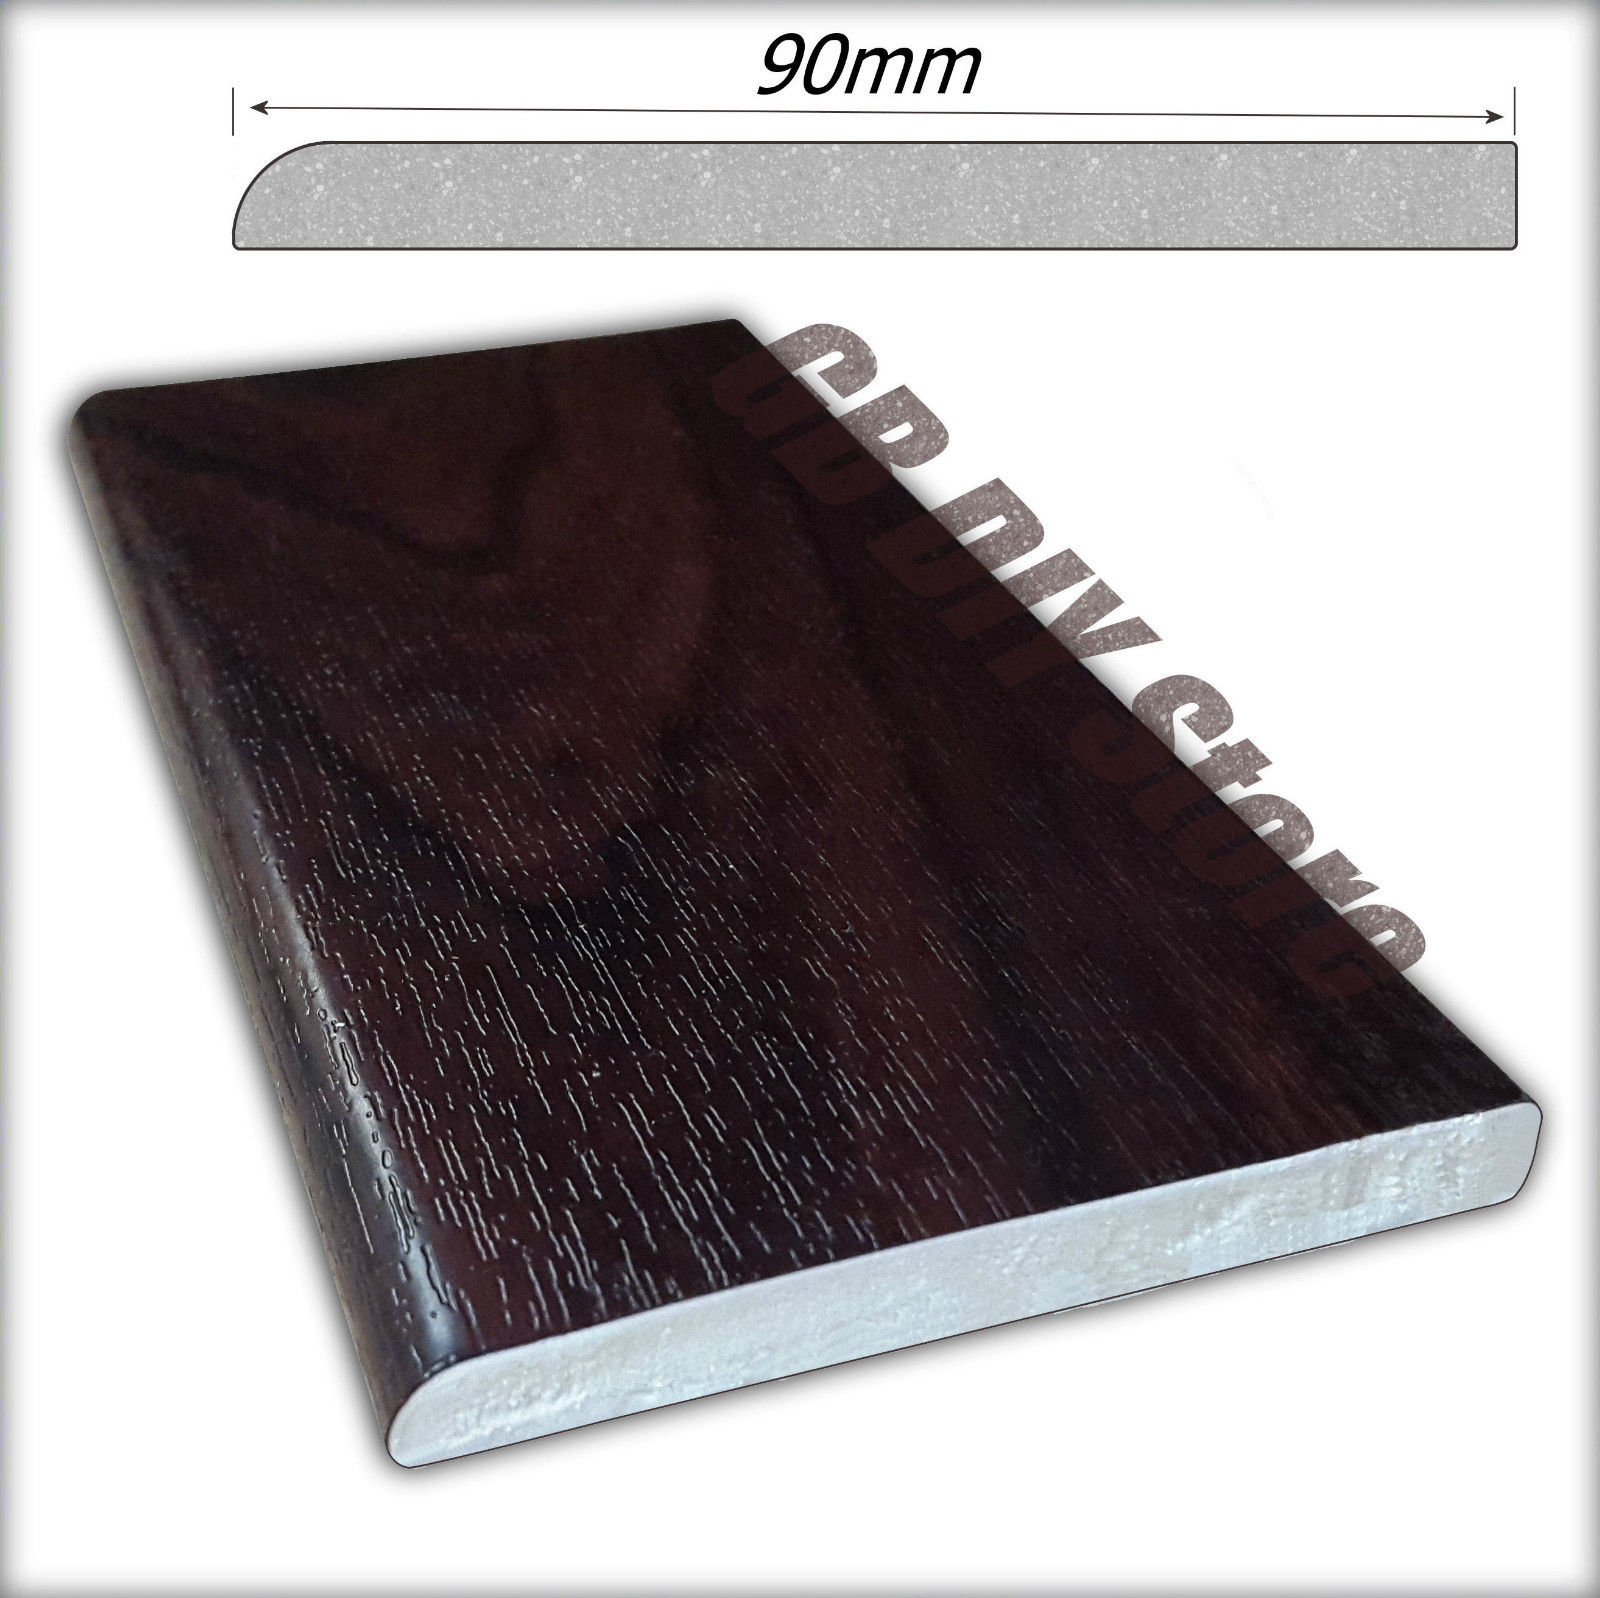 Upvc Window And Door Trim Architrave Rosewood Brown Pvc 5m